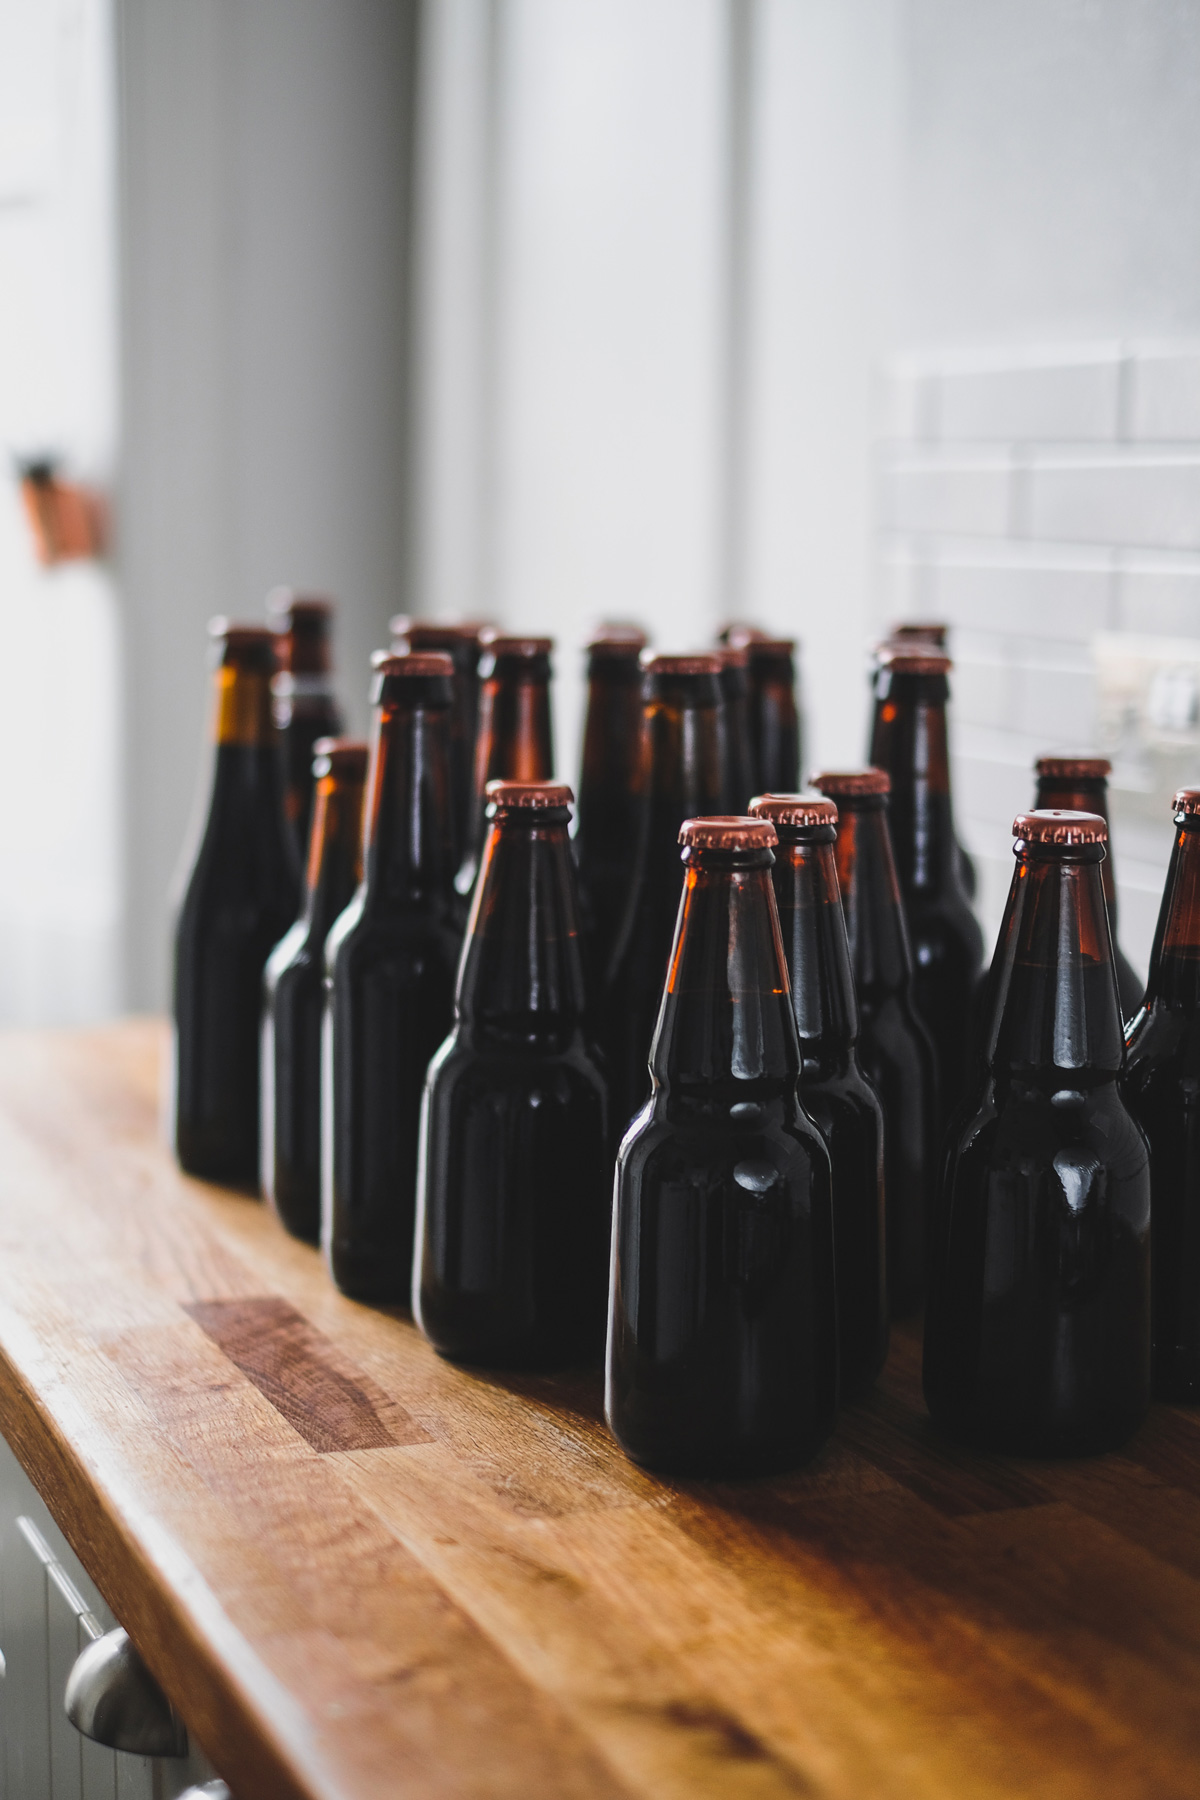 Why are beer bottles brown